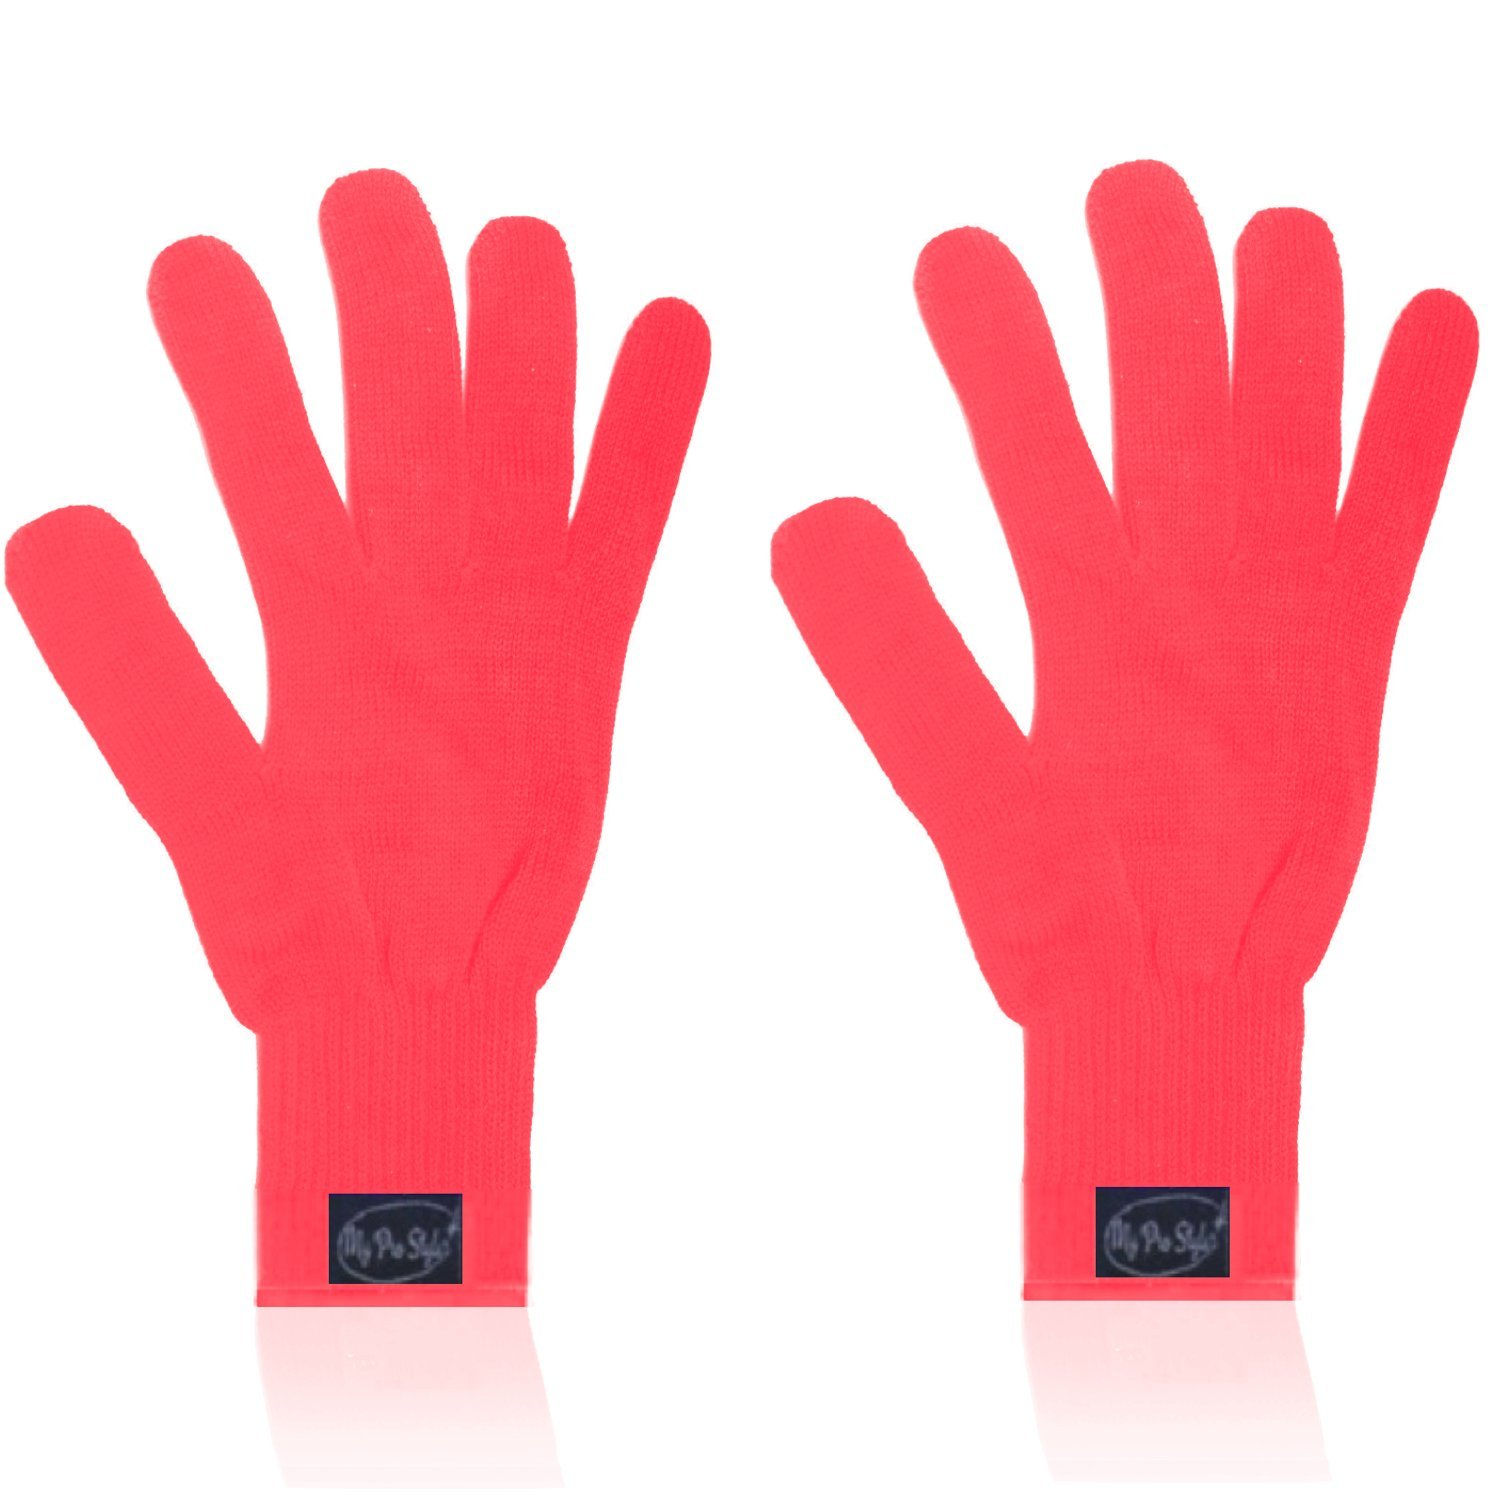 (PAIR) 2 X ORANGE NEON - Professional Heat Resistant Gloves. For Curling and Flatting Iron